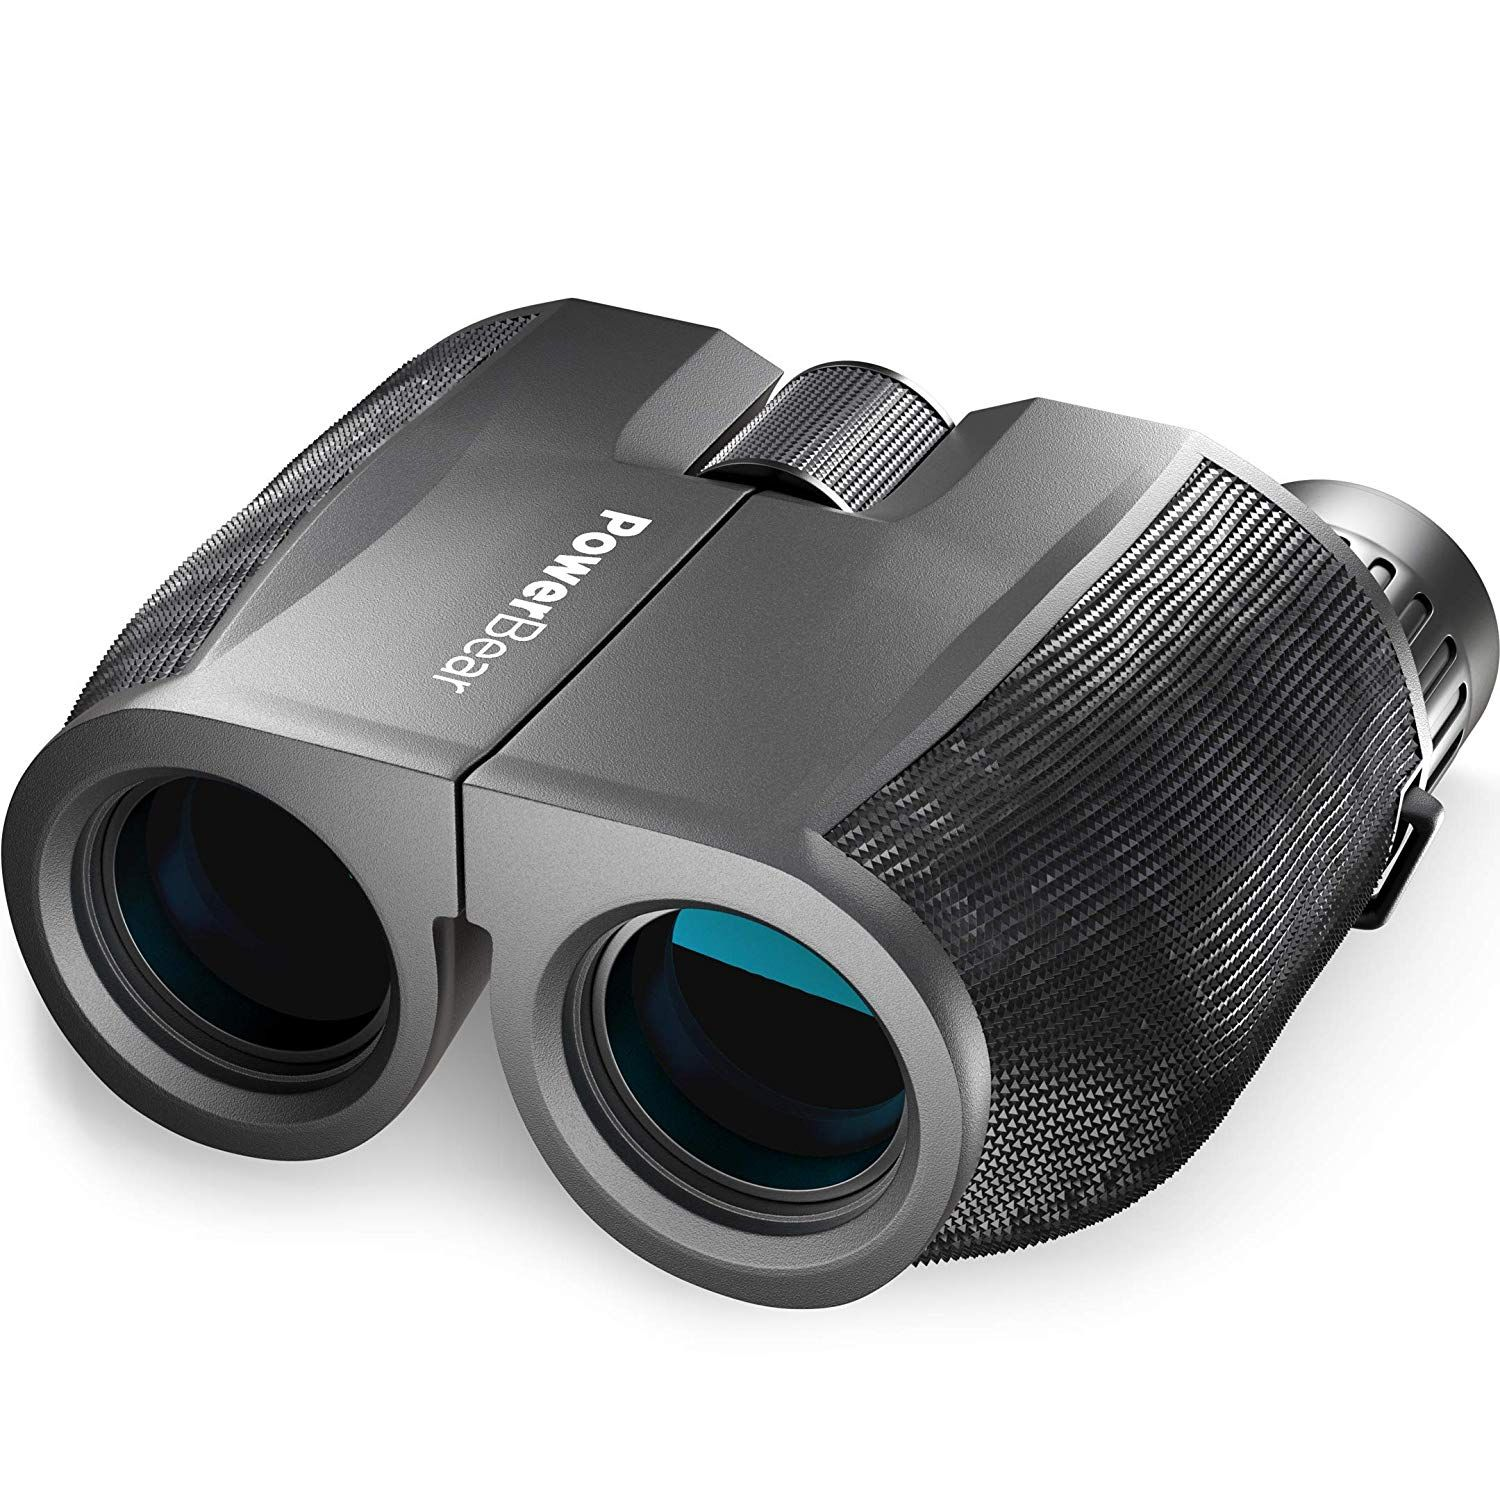 10x25 Compact Binoculars for Bird Watching with BAK4 Roof Prism FMC Lens for Theater Concerts Outdoor Travel 0.53lb Pocket Binoculars Foldable Small Night Vision Binoculars for Adults Kids